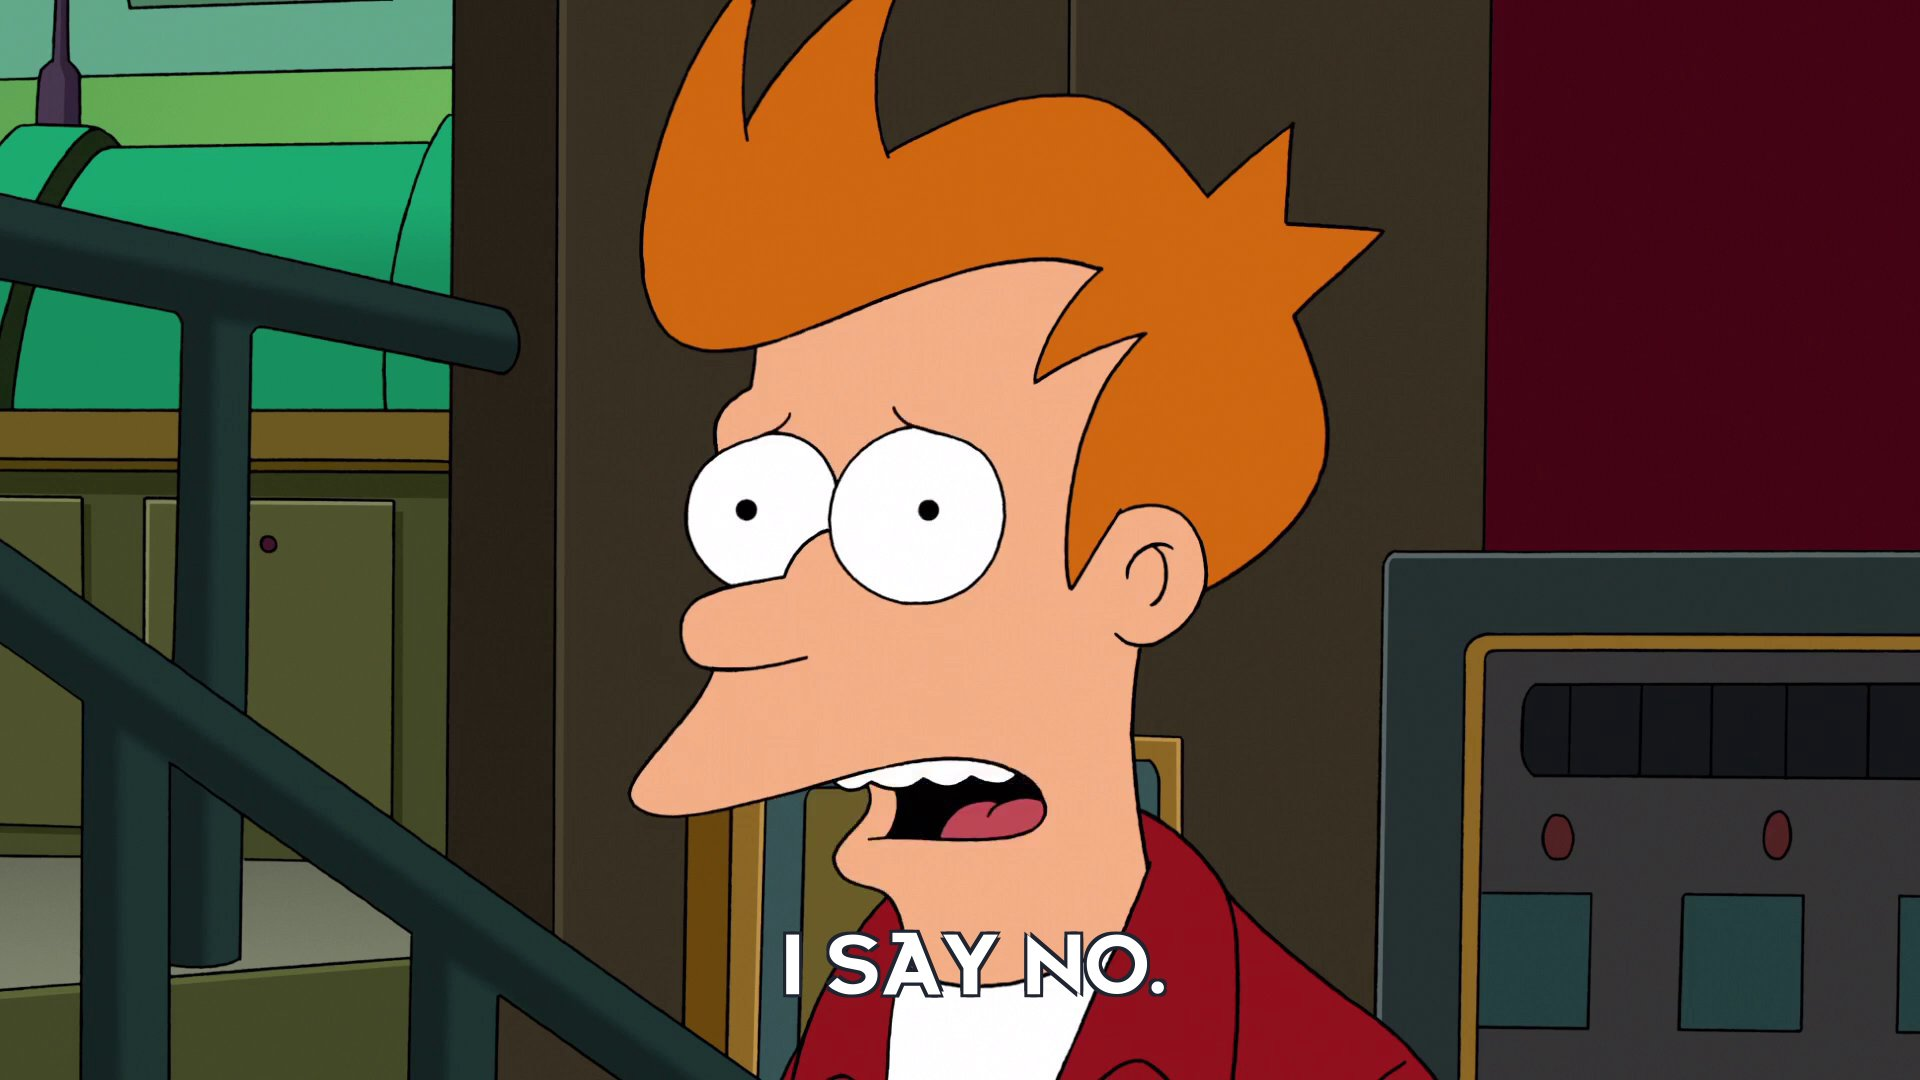 Philip J Fry: I say no.